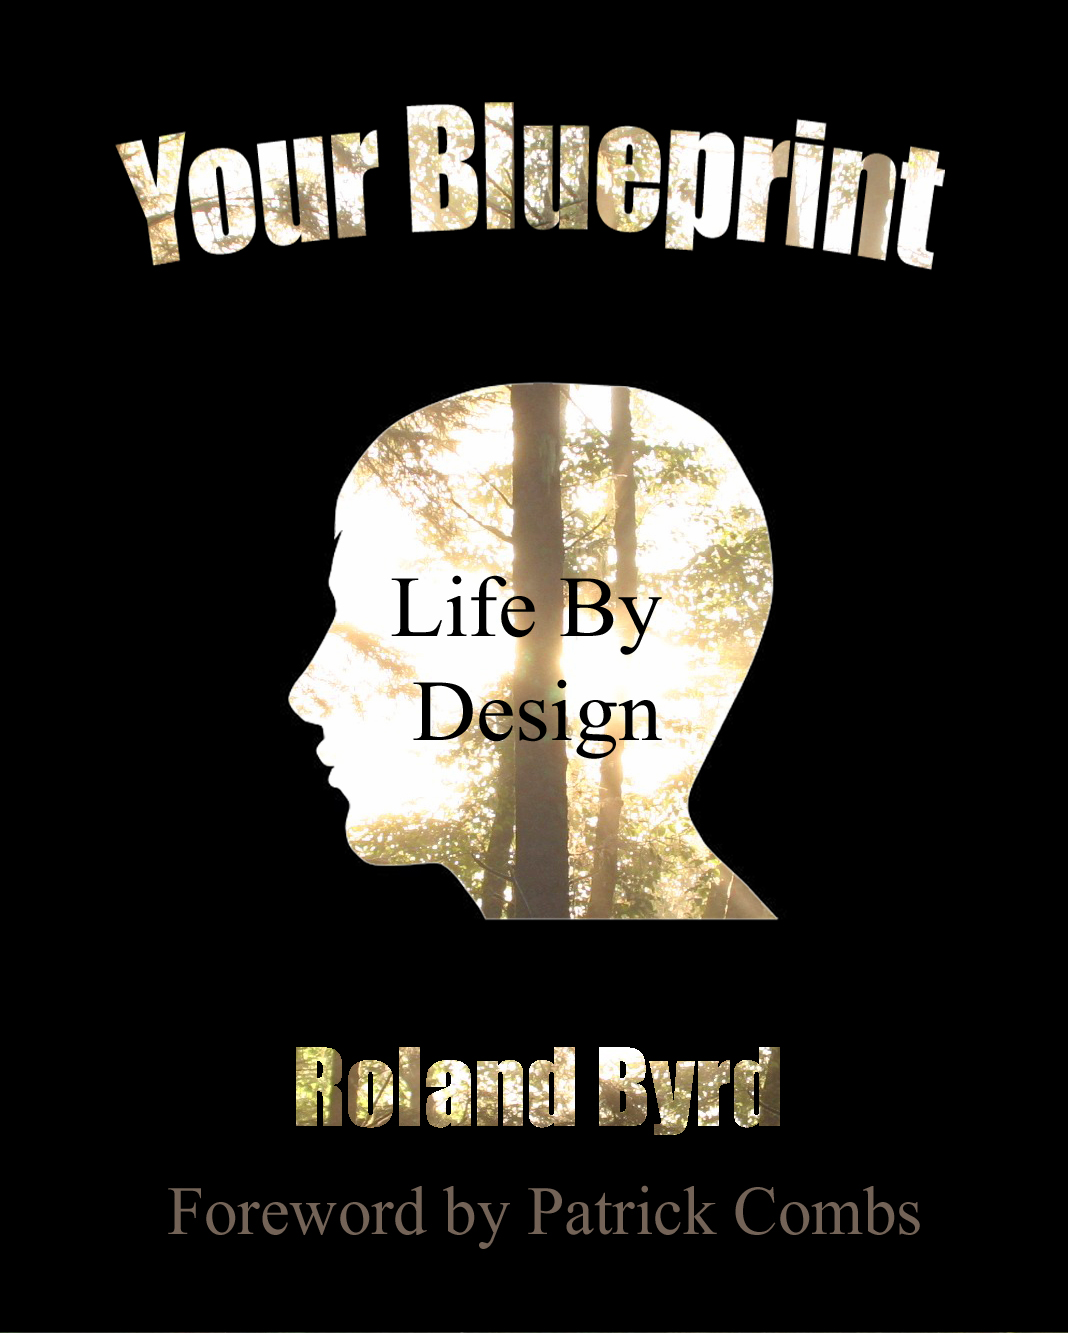 Your blueprint life by design life by design your blueprint life by design by roland byrd malvernweather Image collections